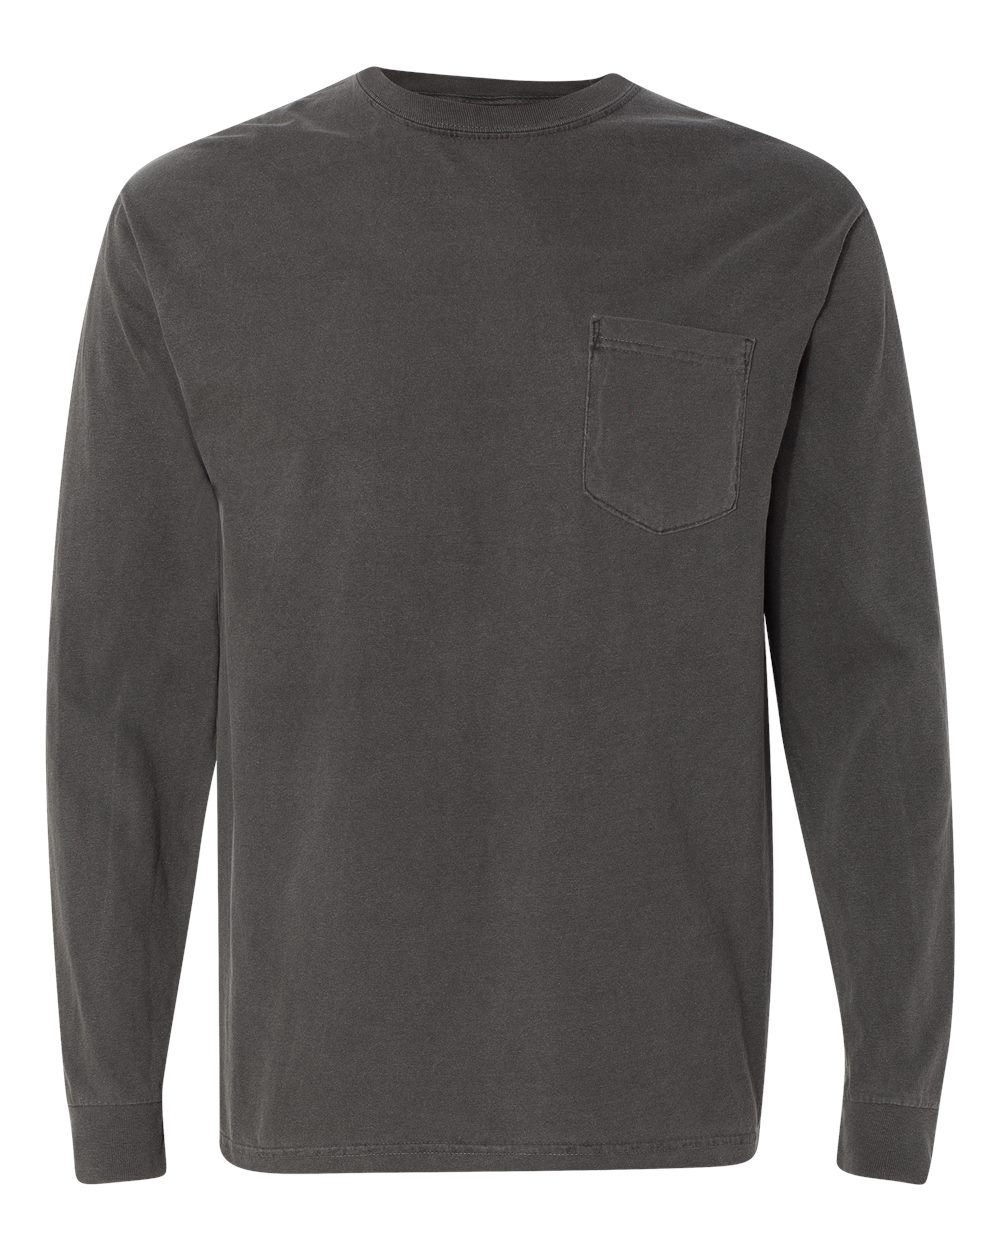 32c8c43e Comfort Colors 4410 - Long Sleeve Pocket T-Shirt | Needen USA